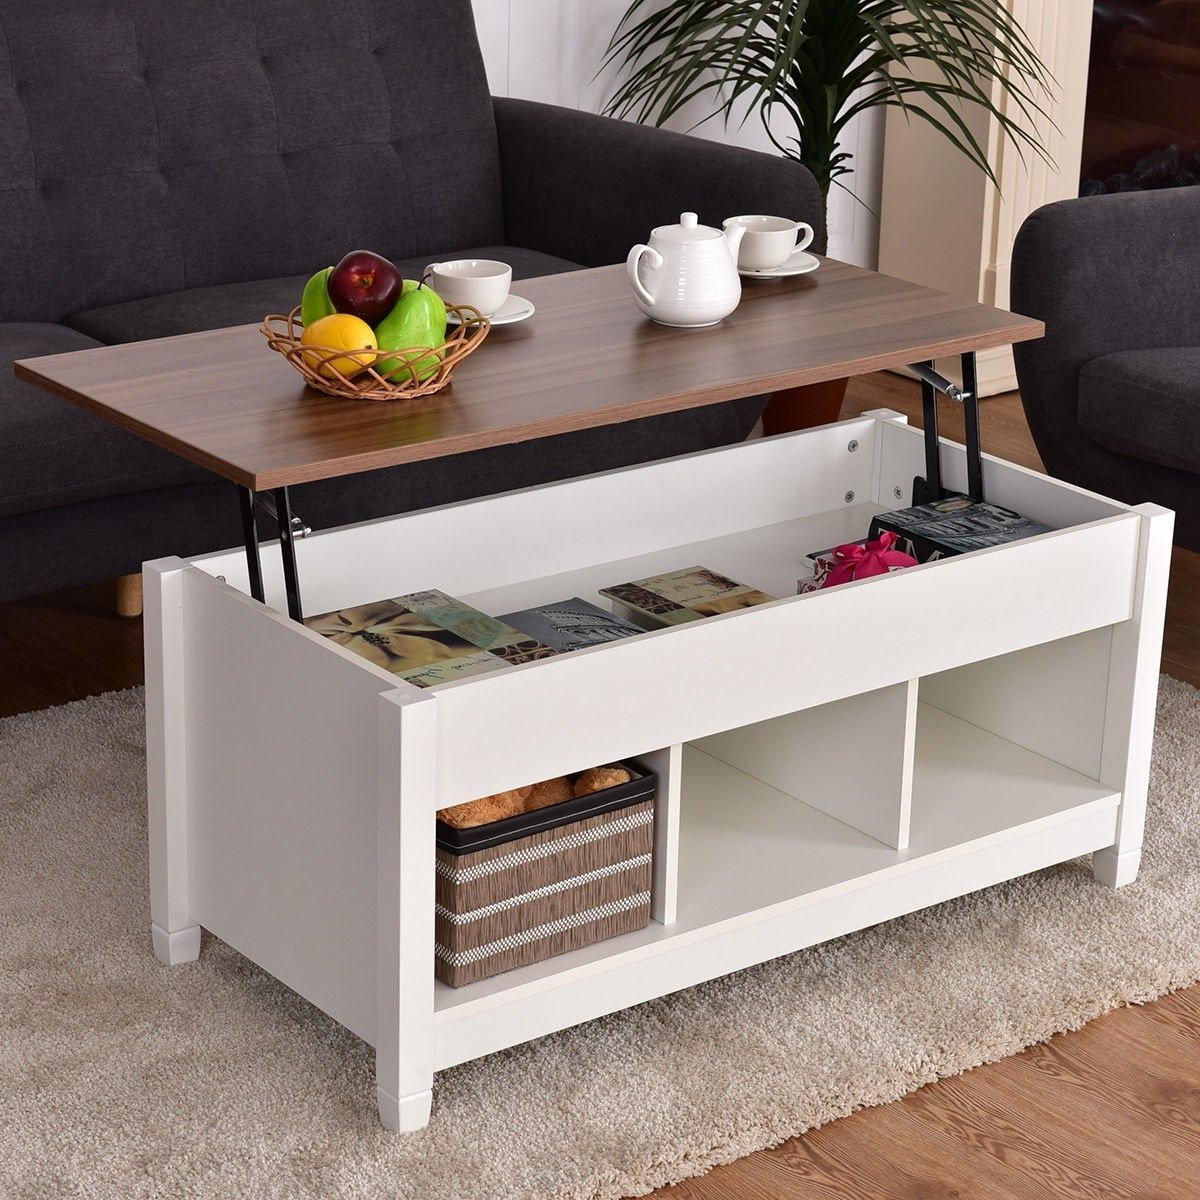 Premium Quality Low Coffee Table With Hidden Lift Top and Lower Storage Compartment For Contemporary Home And Living Room (1, White) by Goplus